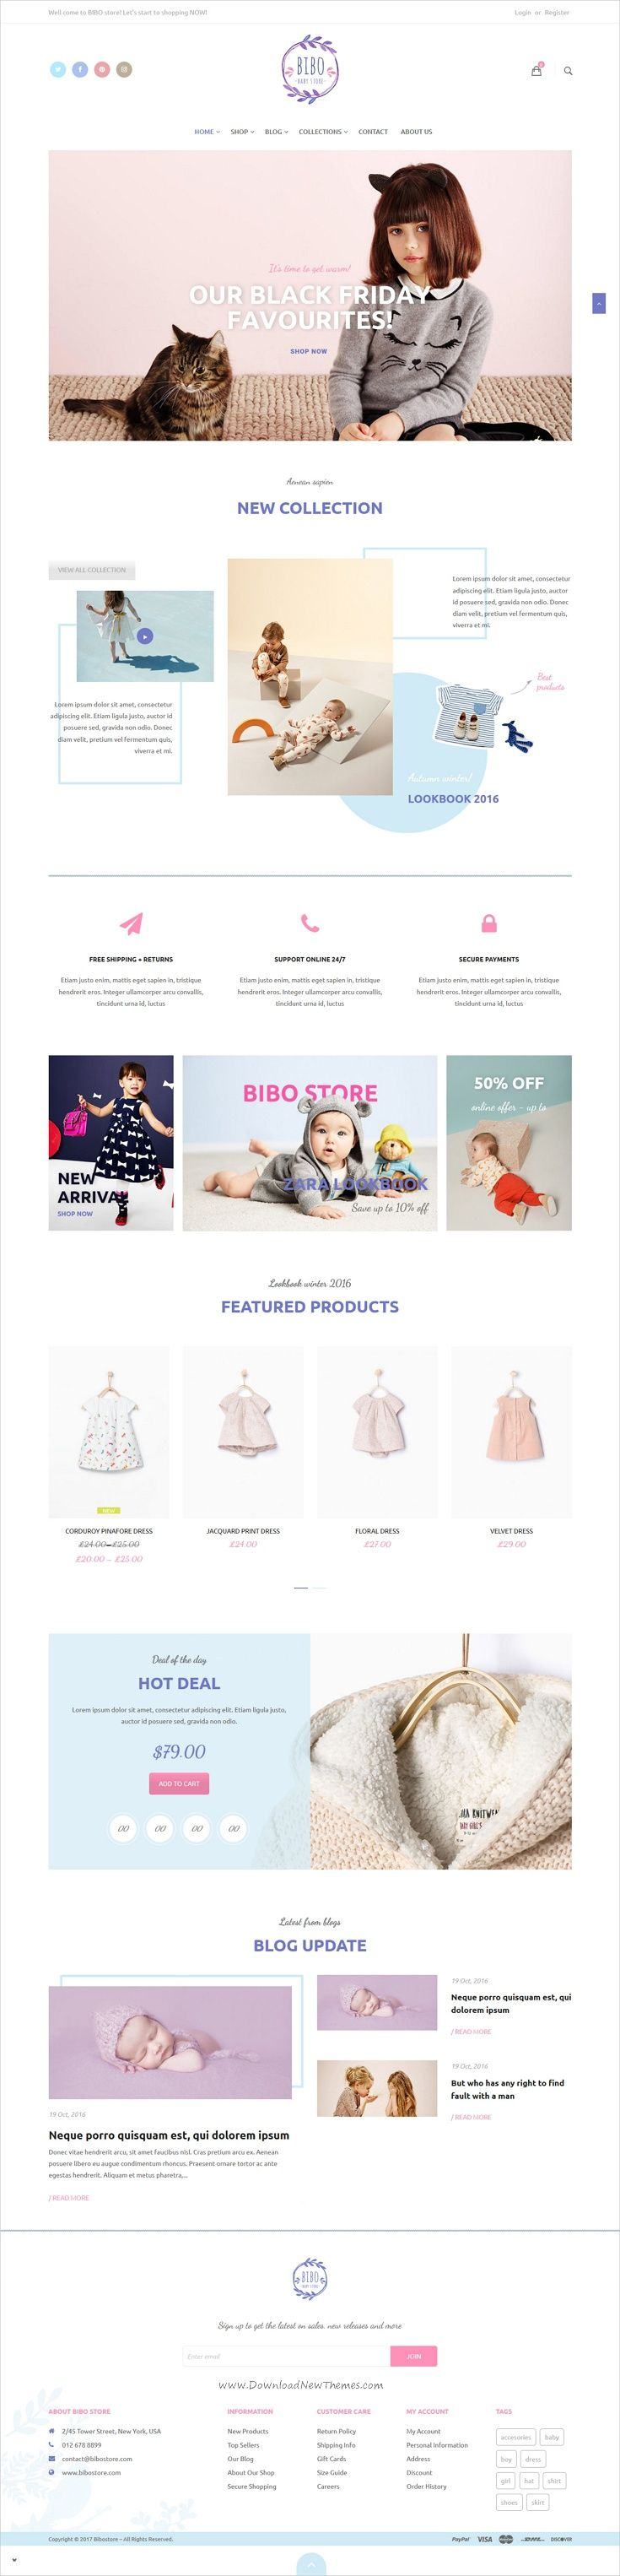 Bibo #baby store is a wonderful responsive #WooCommerce #WordPress theme for amazing eCommerce websites with multiple homepage layouts download now➩ https://themeforest.net/item/bibo-baby-store-woocommerce-theme/19014302?ref=Datasata